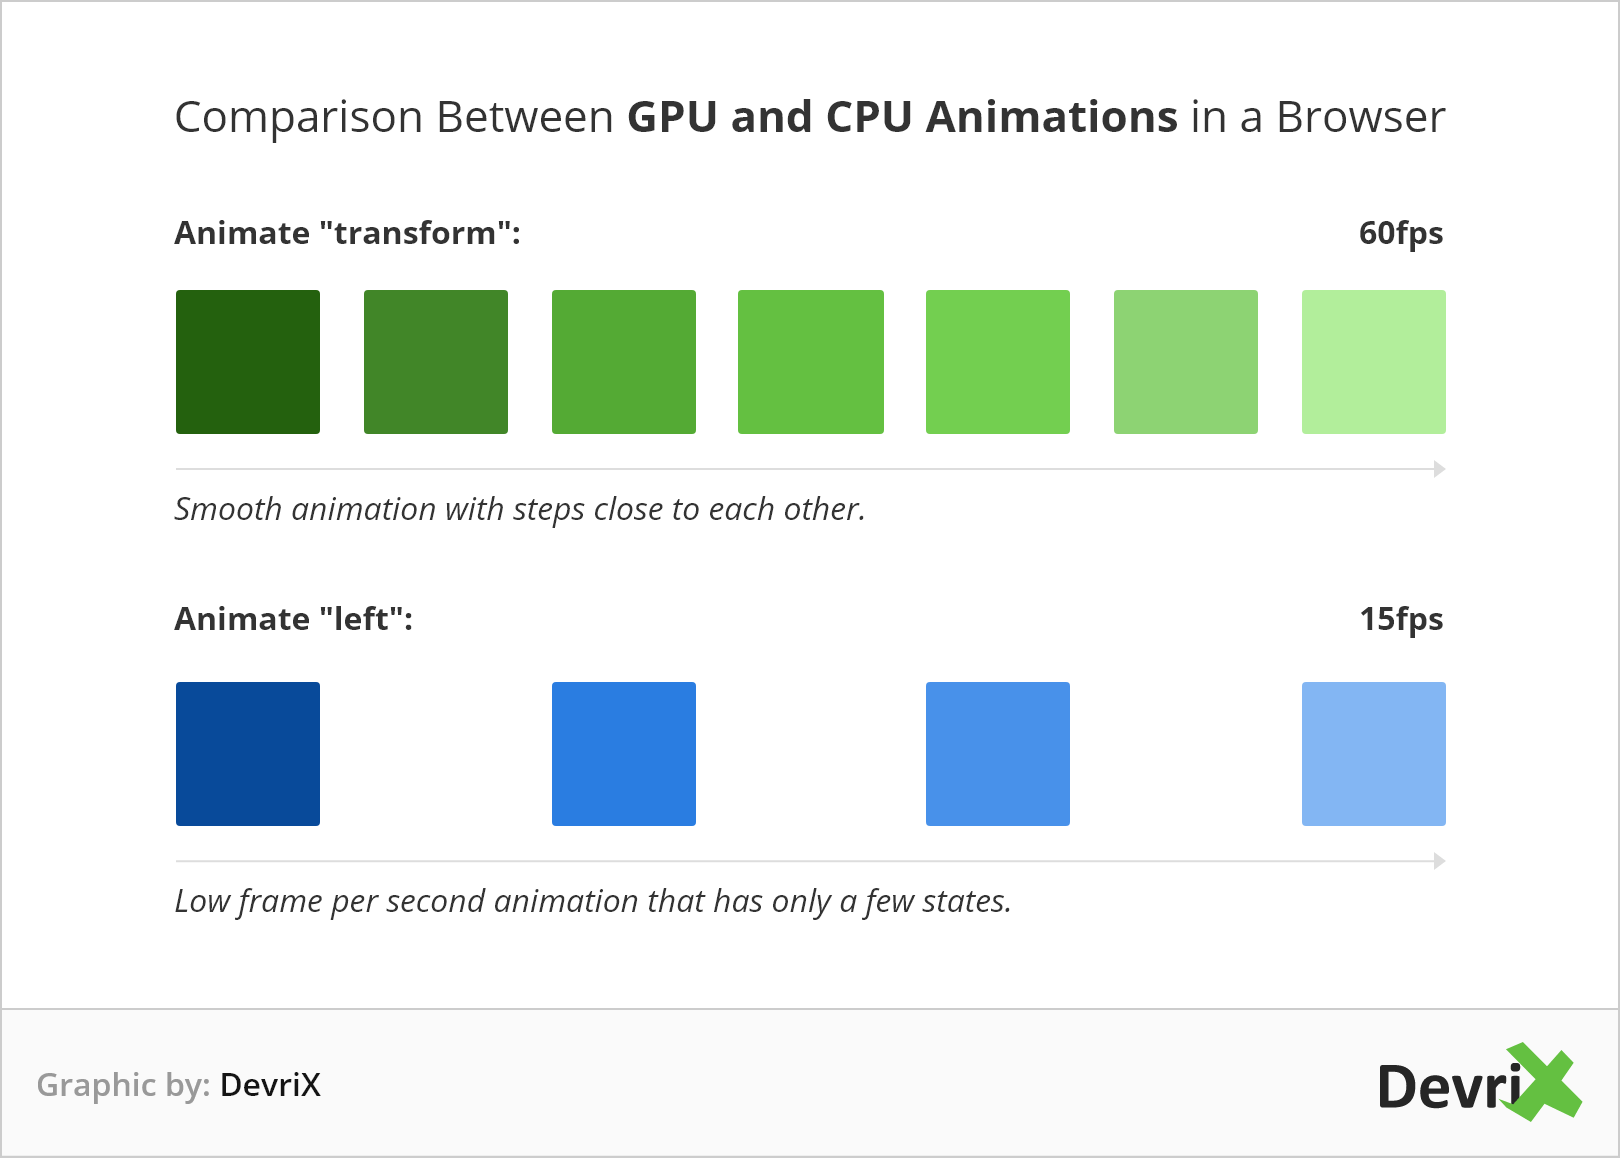 Comparison Between GPU and CPU Animations in a Browser